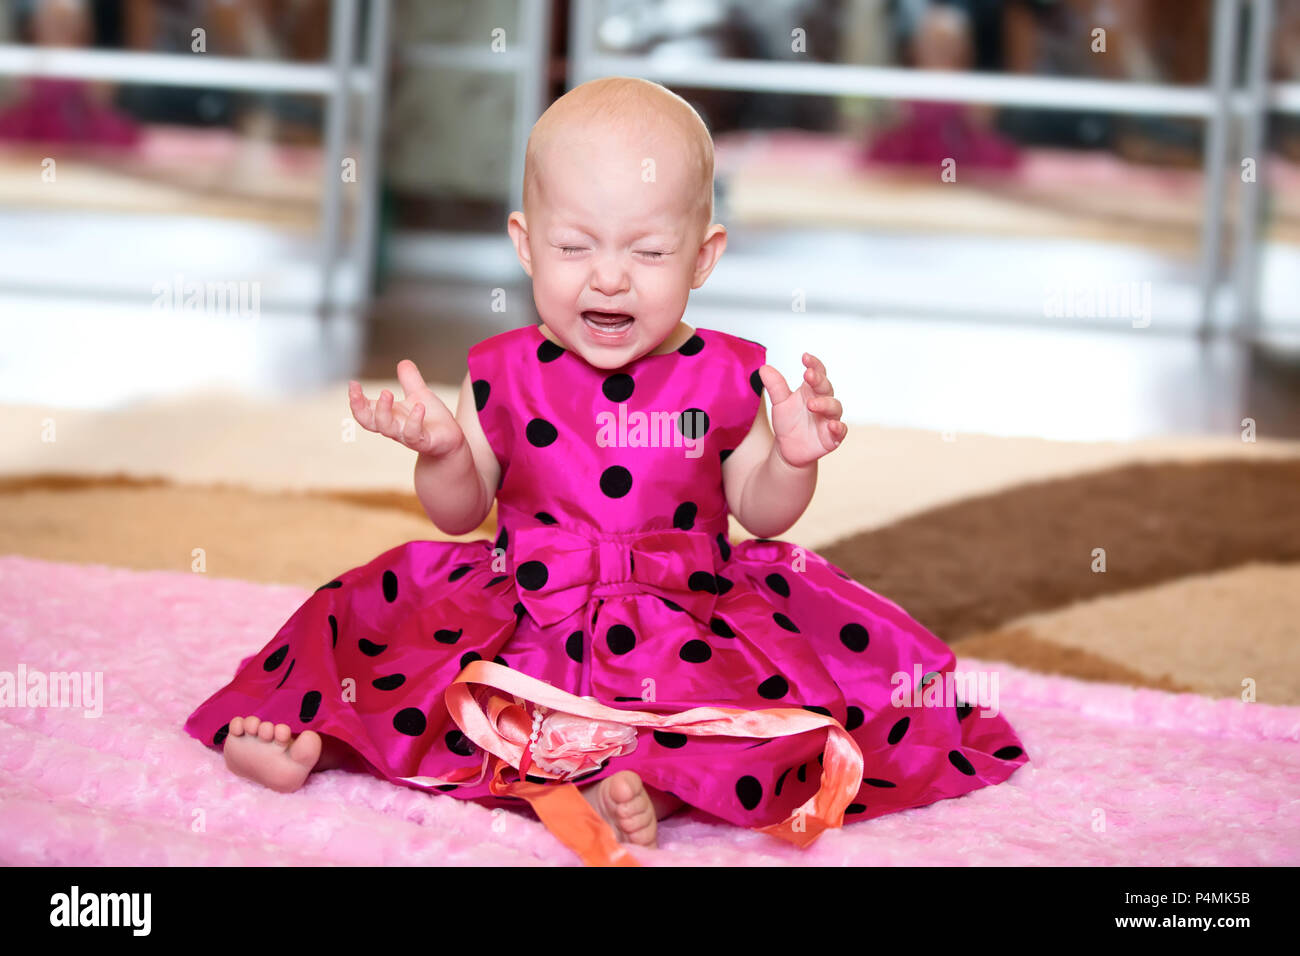 A sobbing little girl in a bright dress. Crying baby - Stock Image